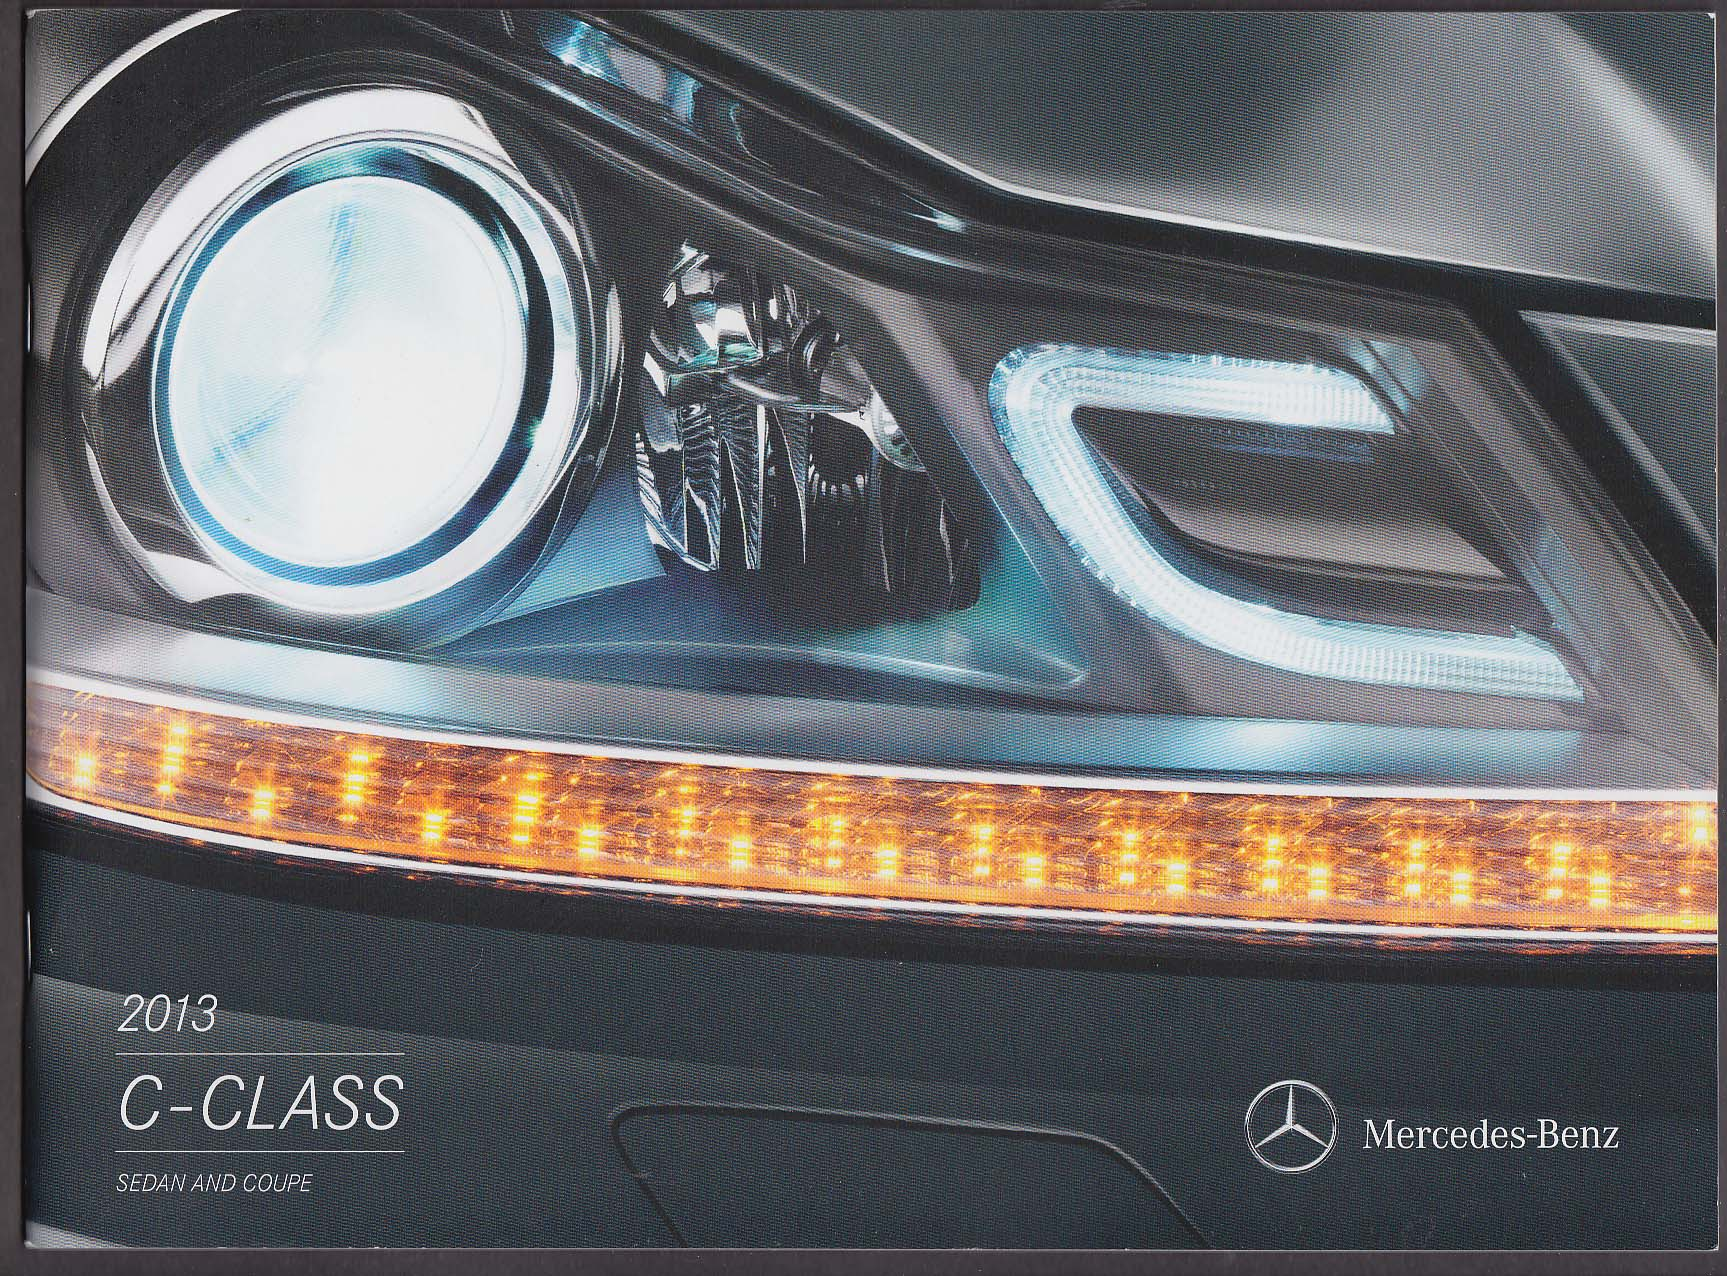 2013 Mercedes-Benz C-Class Sedan & Coupe sales catalog